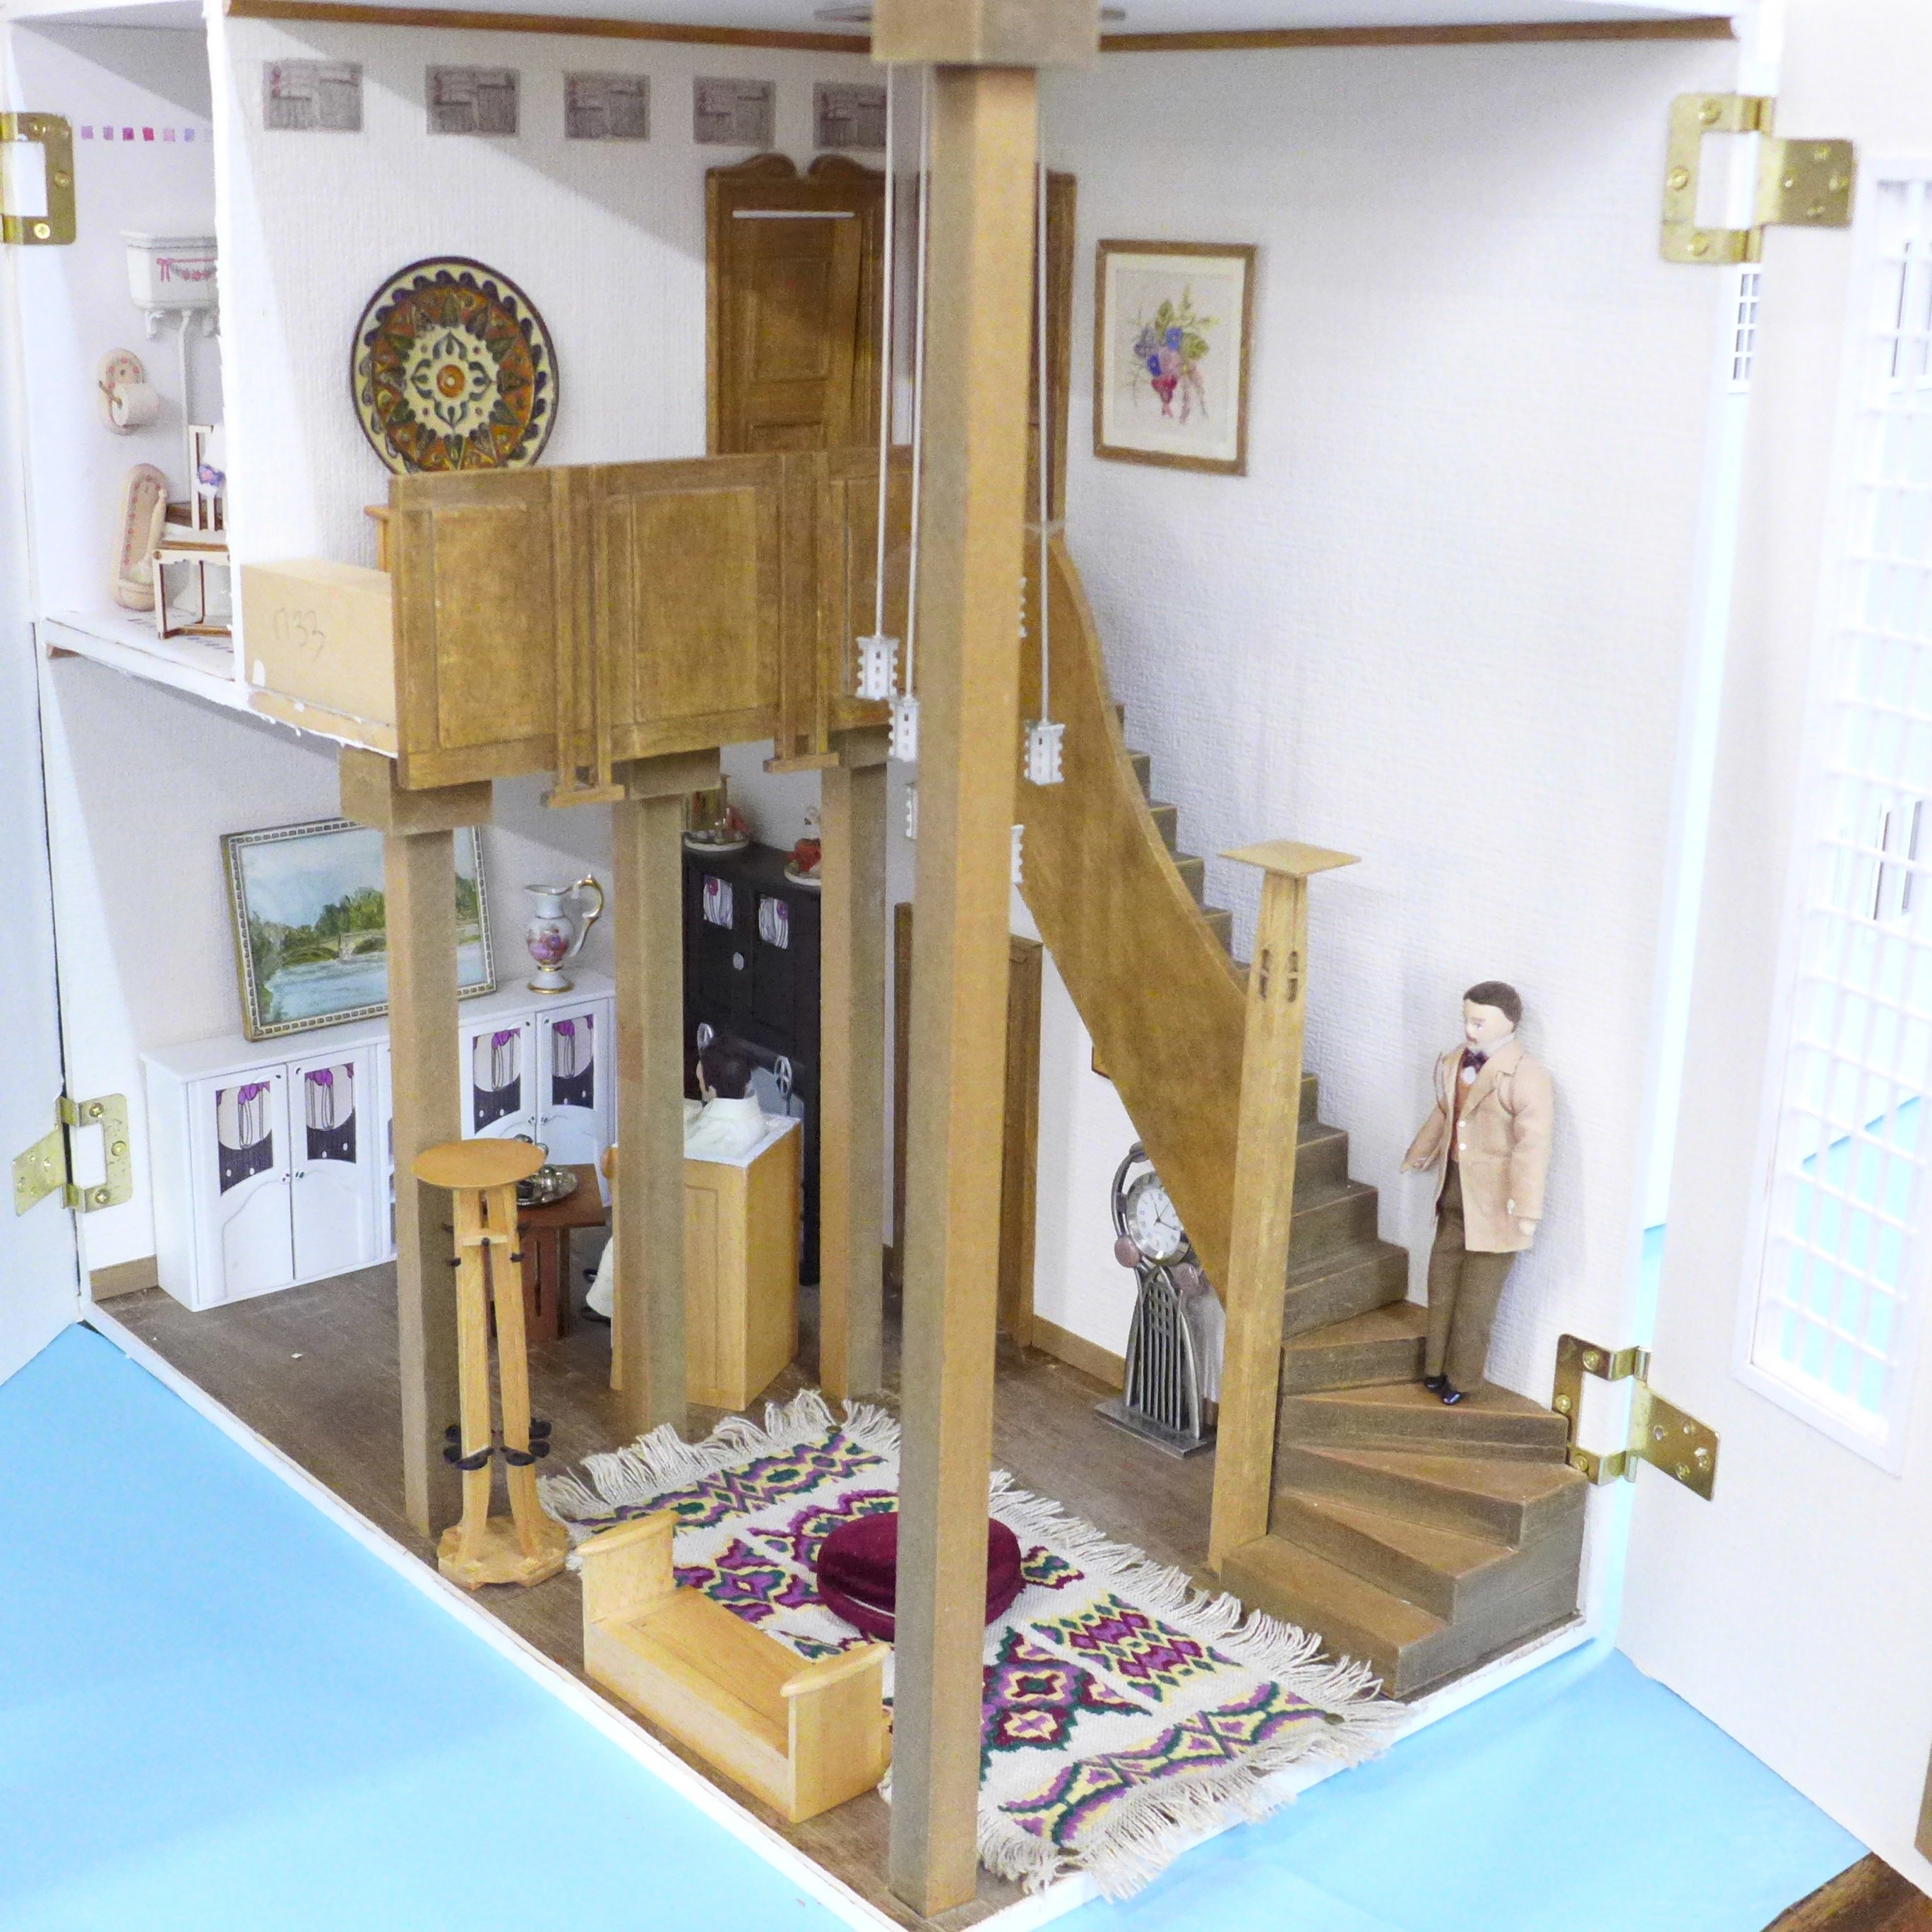 A Dolls House Emporiun Charles Rennie Makintosh-style Scottish House and Furniture. Assembled from a - Image 5 of 18